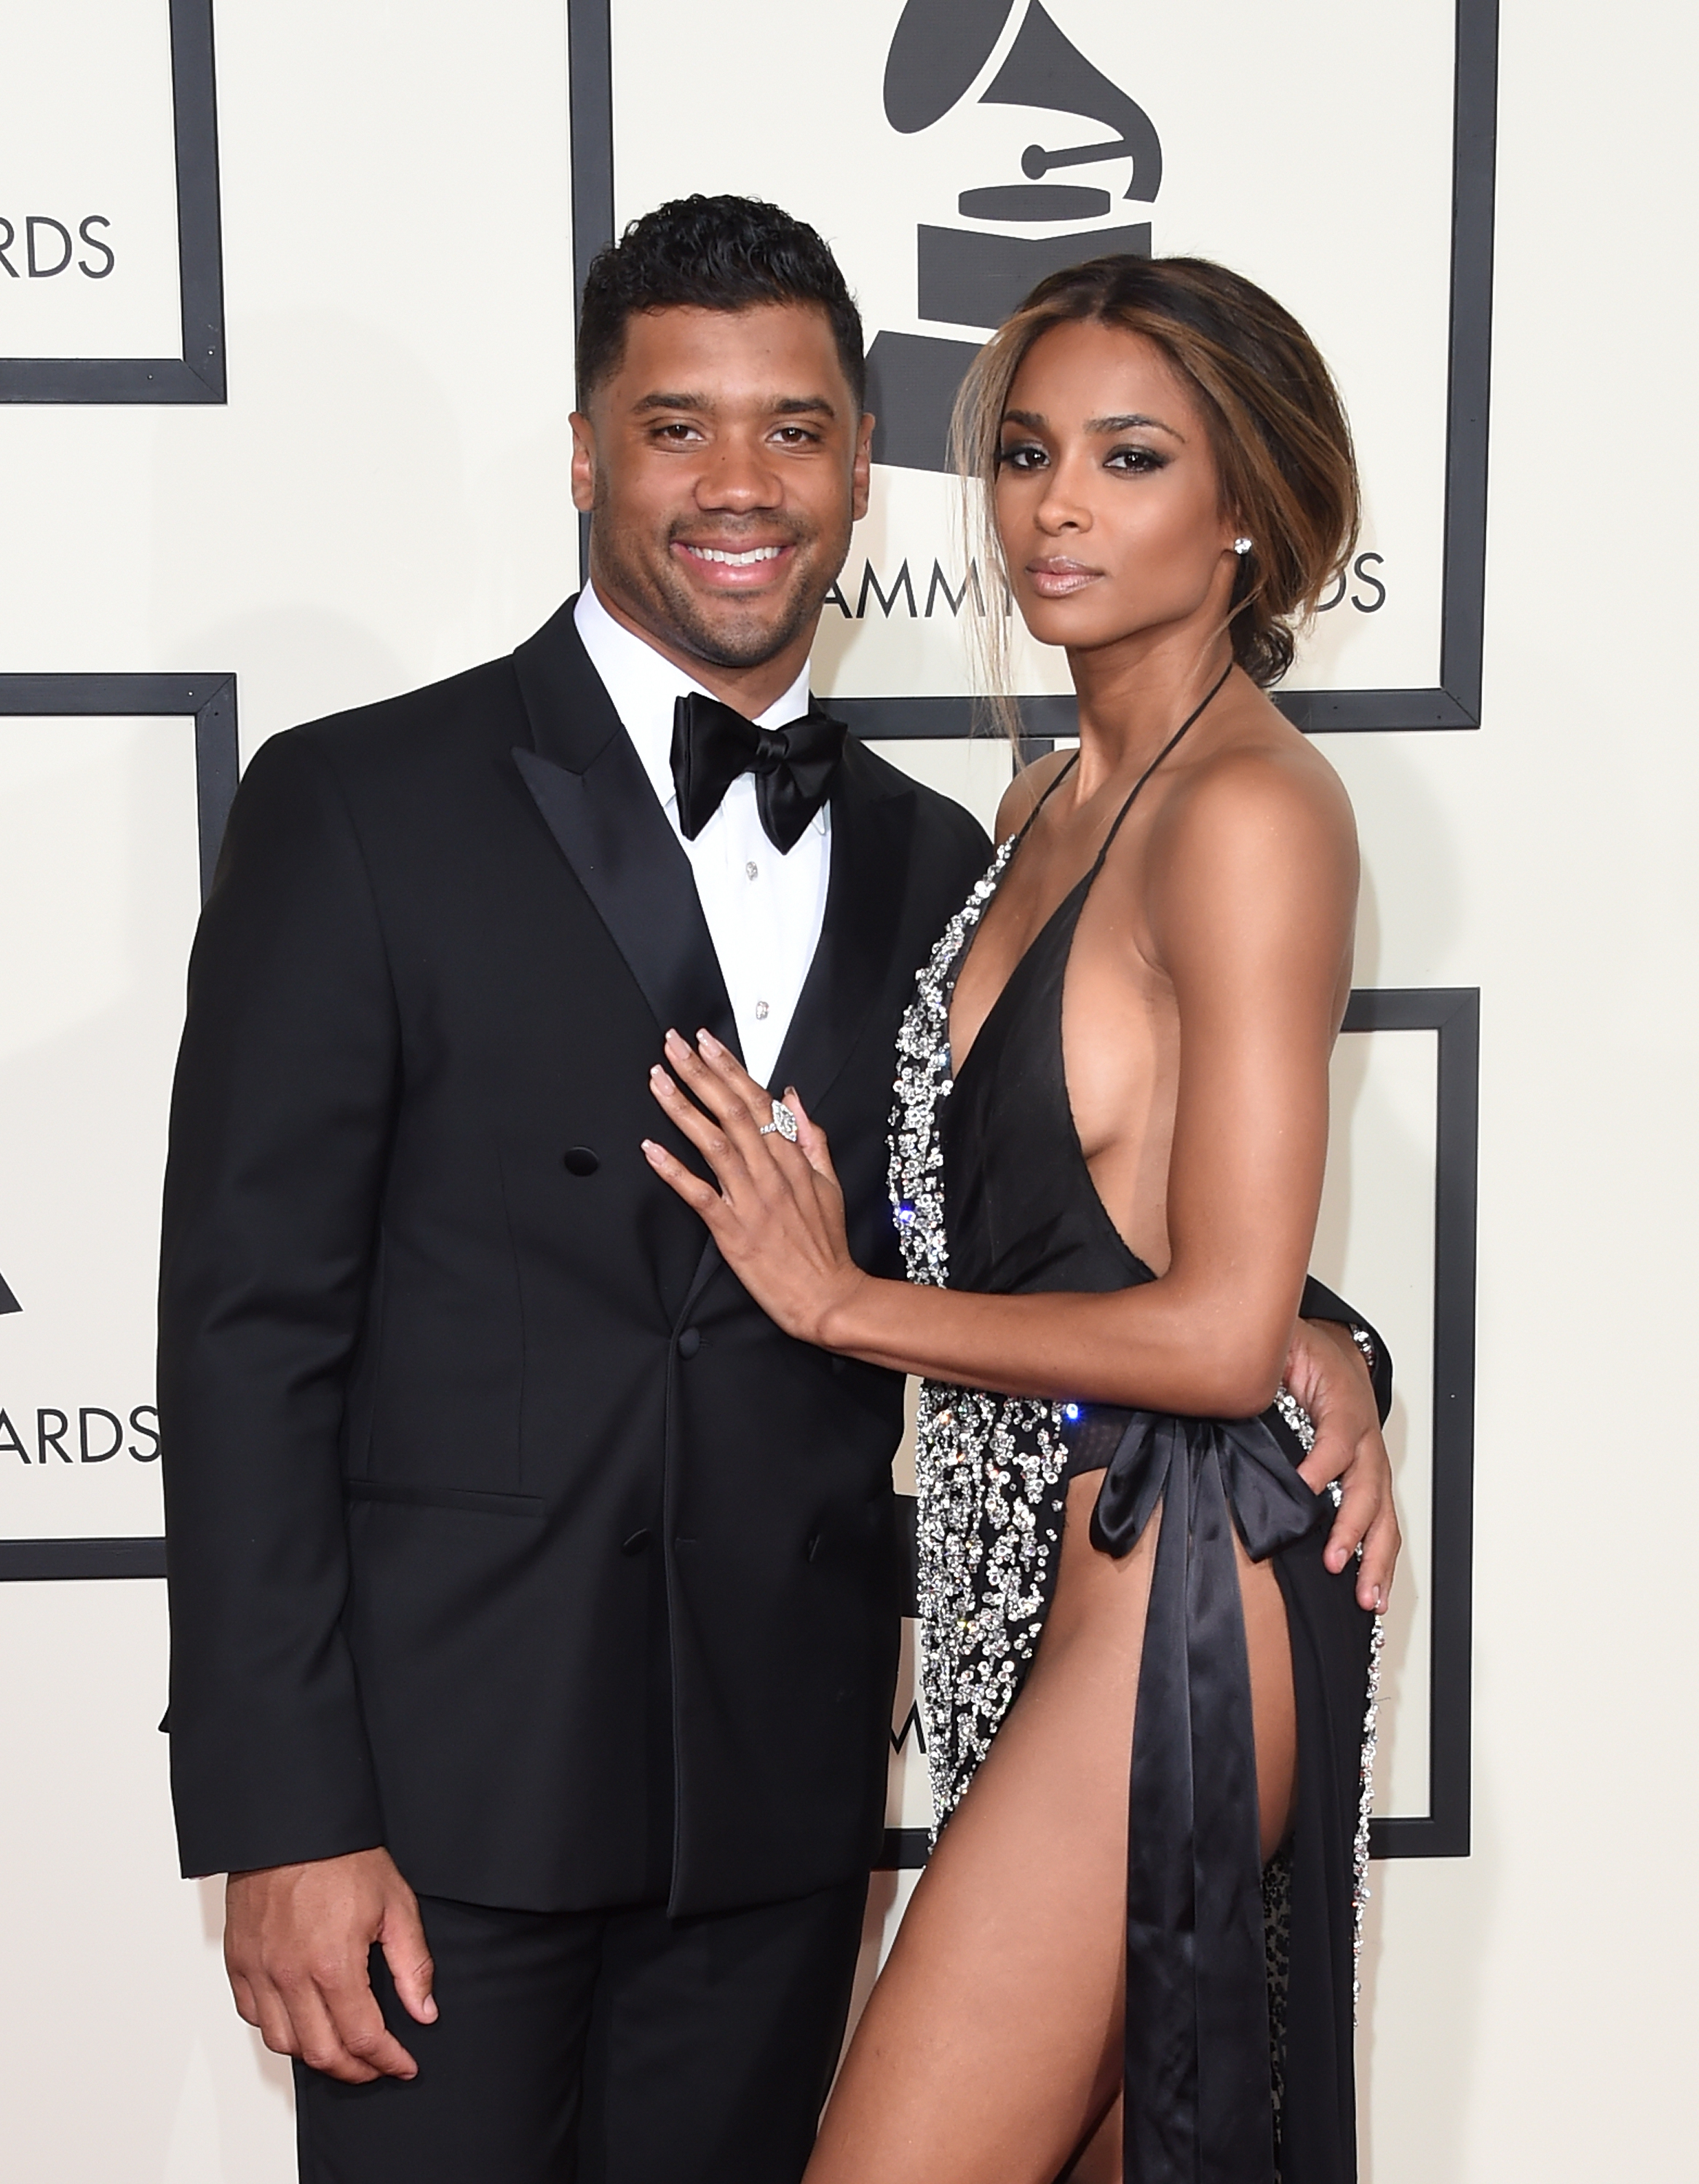 Ciara and Russell Wilson Are Engaged Just After 11 Months